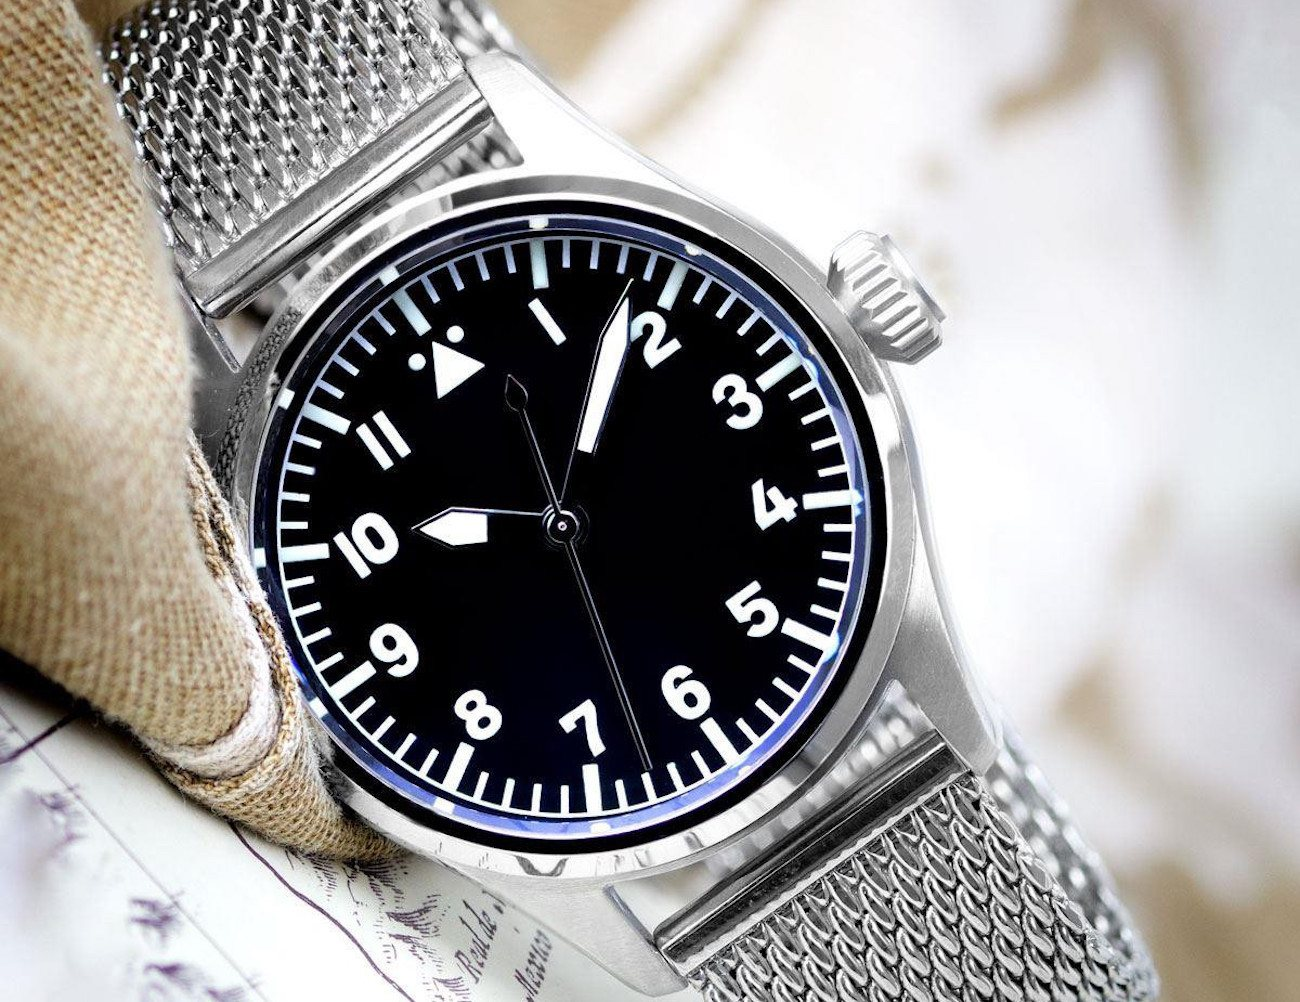 Geckota K1 L01 Pilot Watch